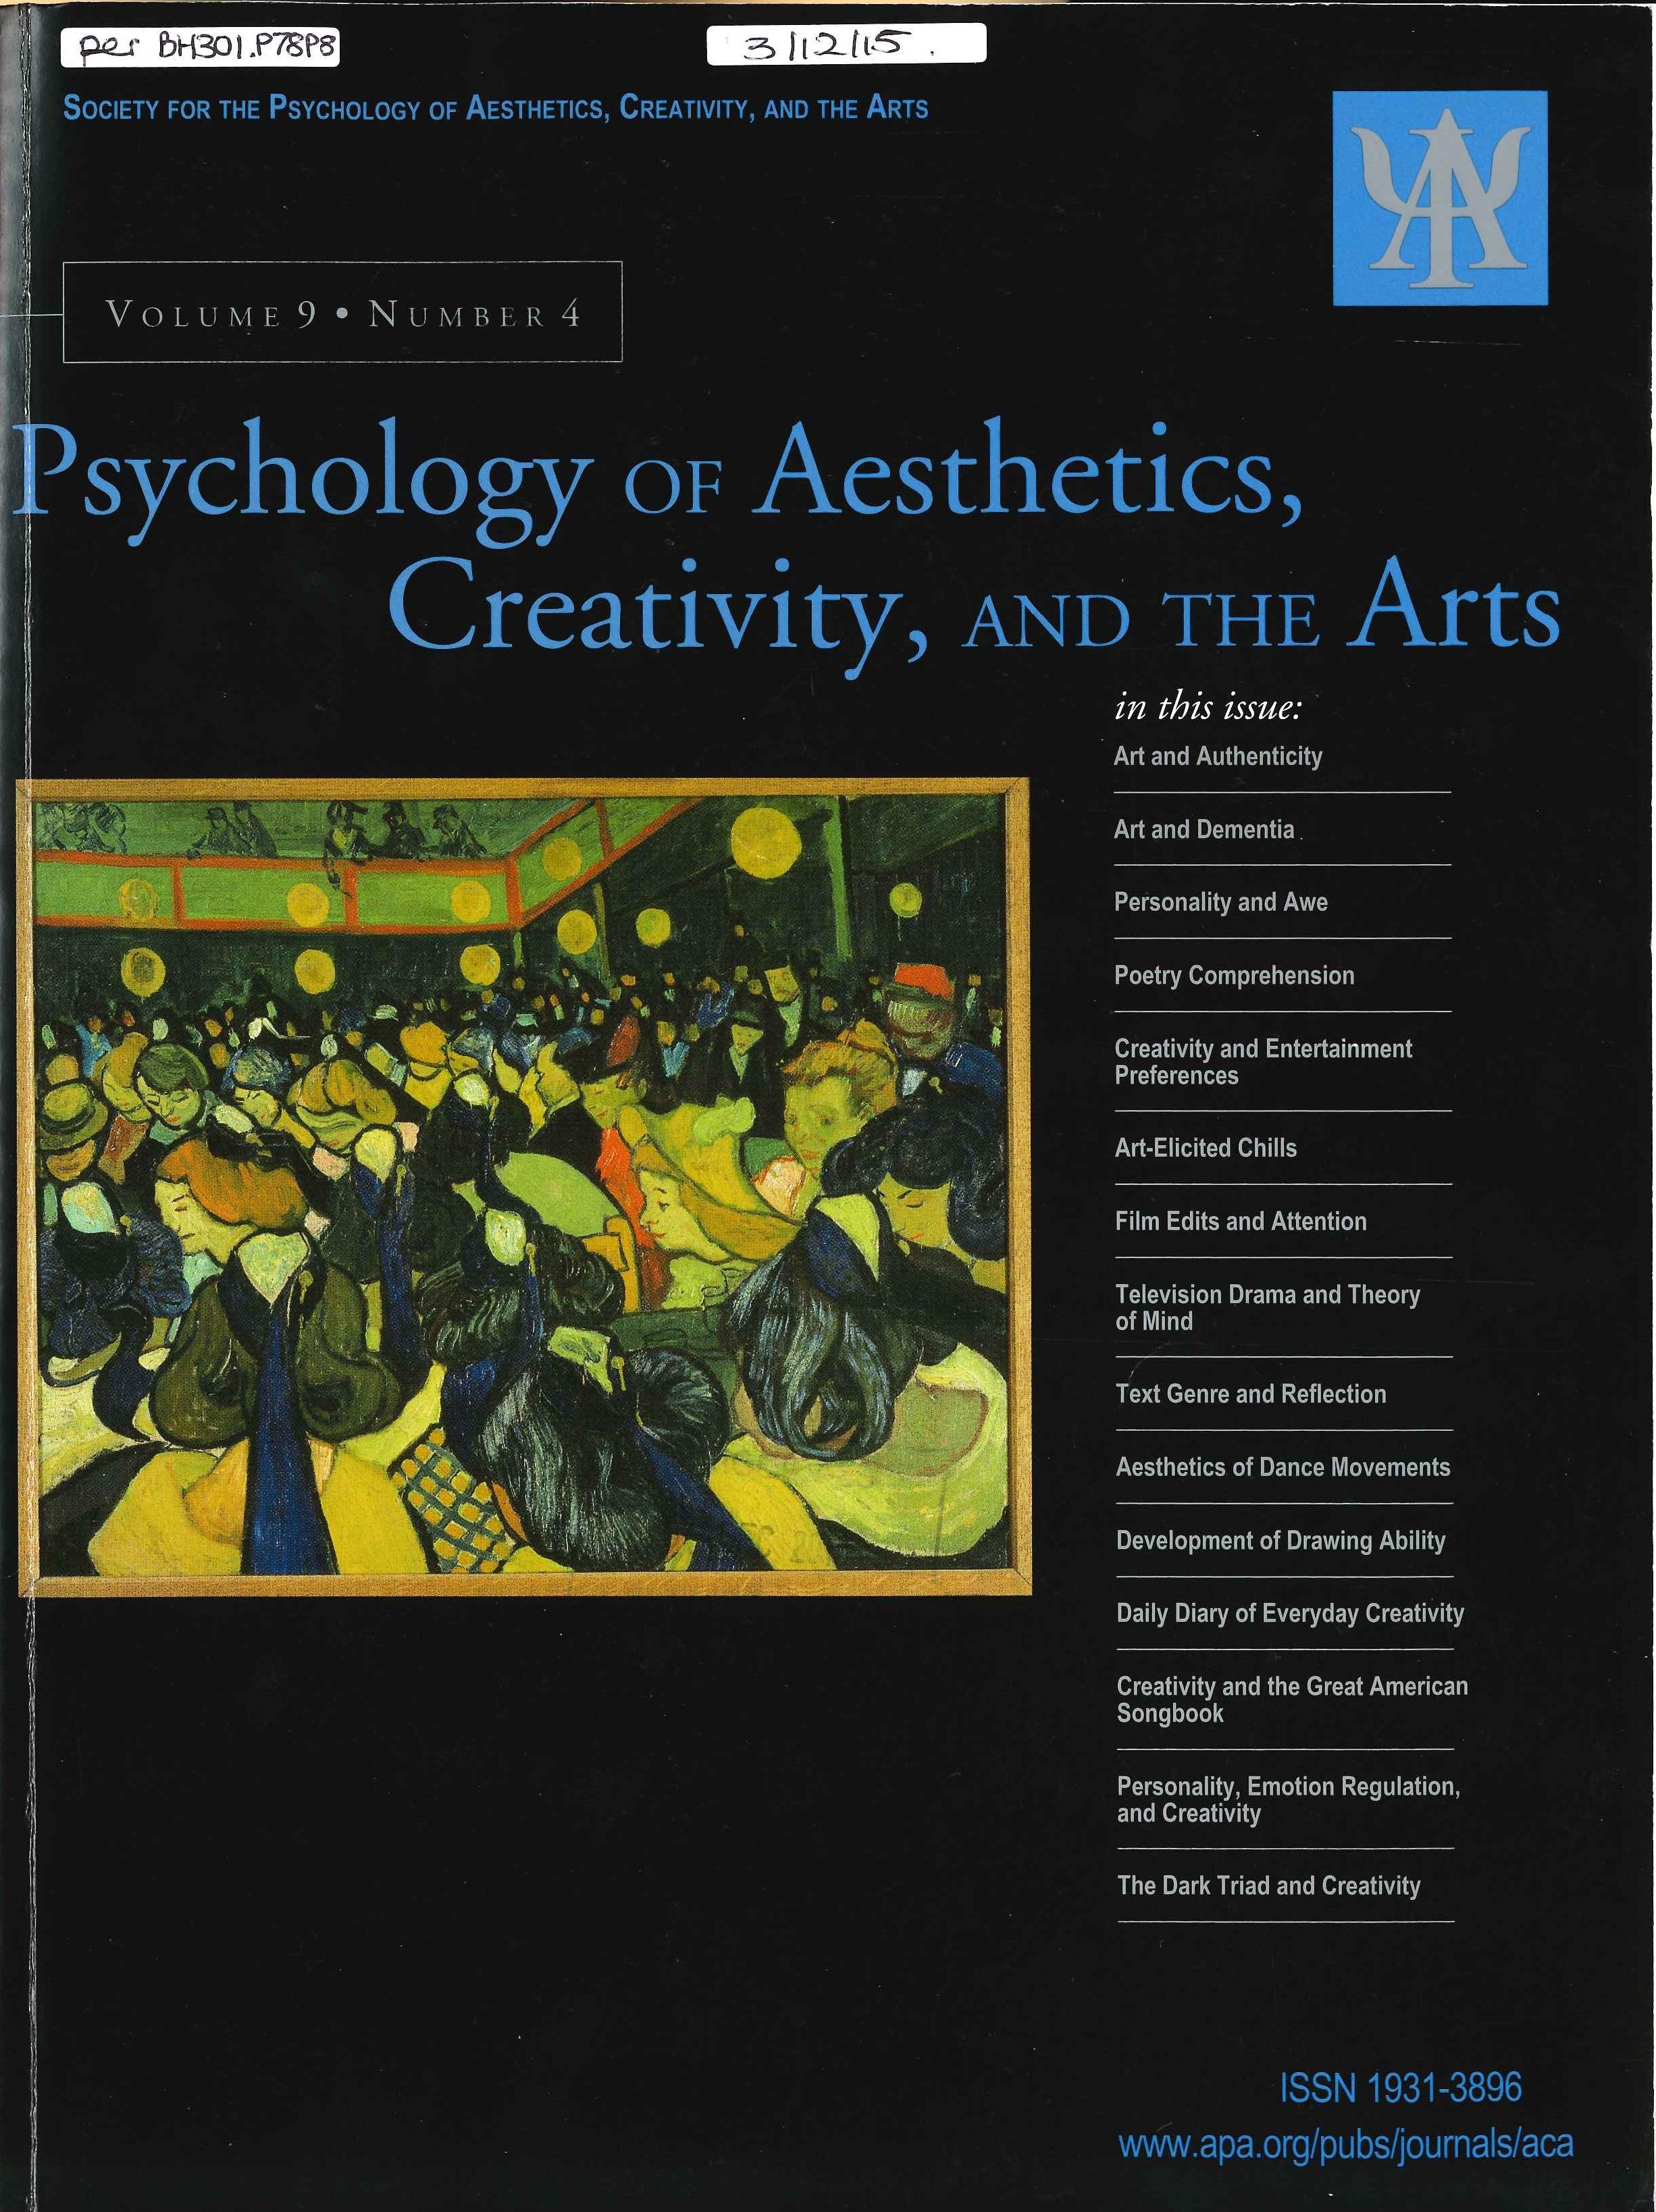 Example of journal cover page